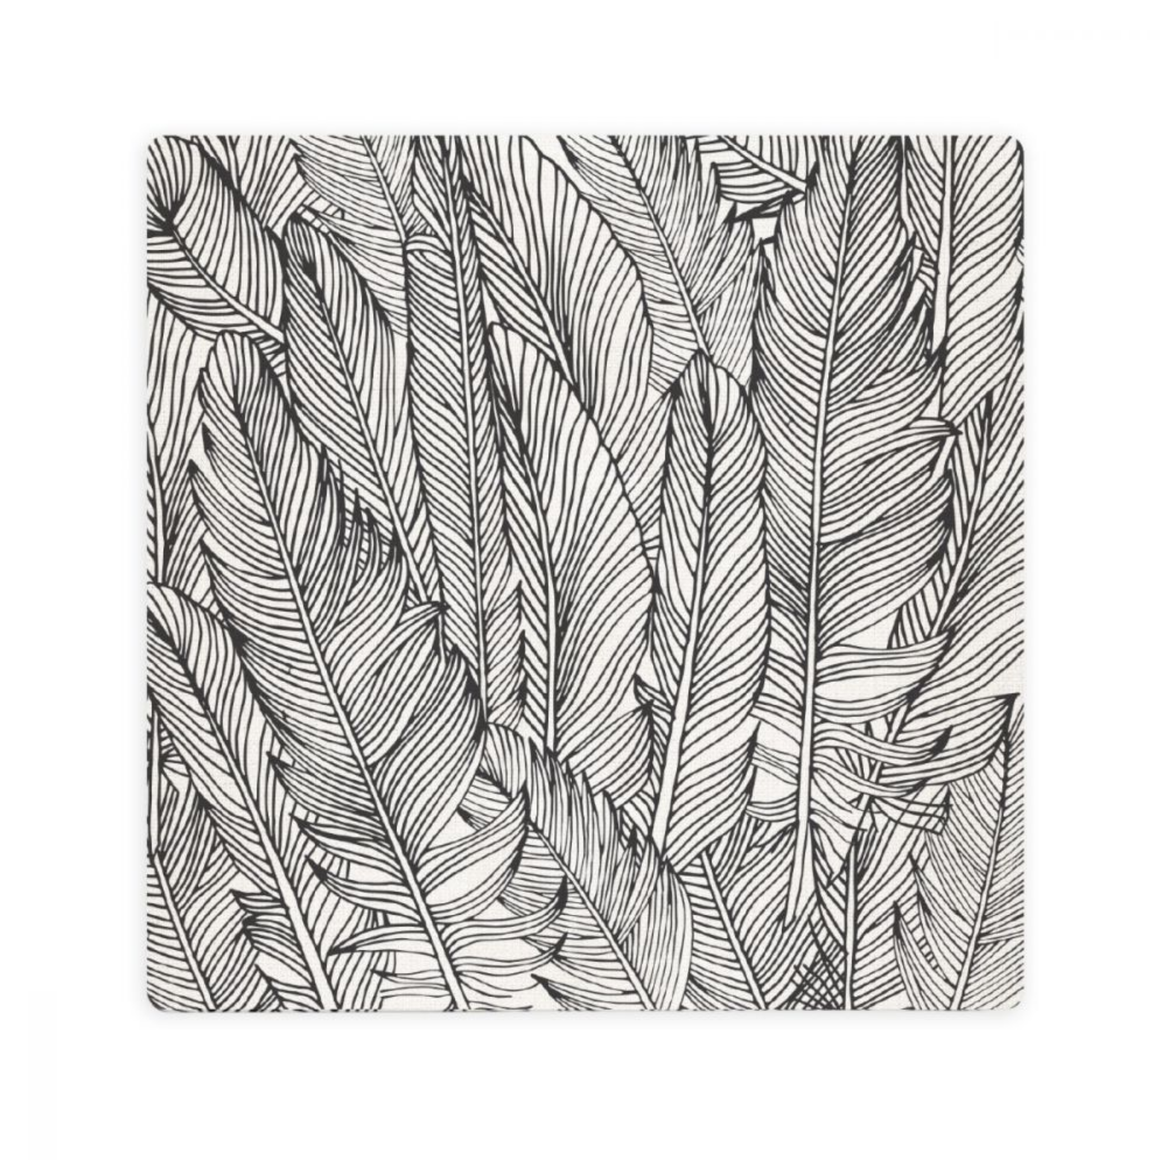 LUXE FEATHER PATTERN CERAMIC COASTER / CORK BACKING